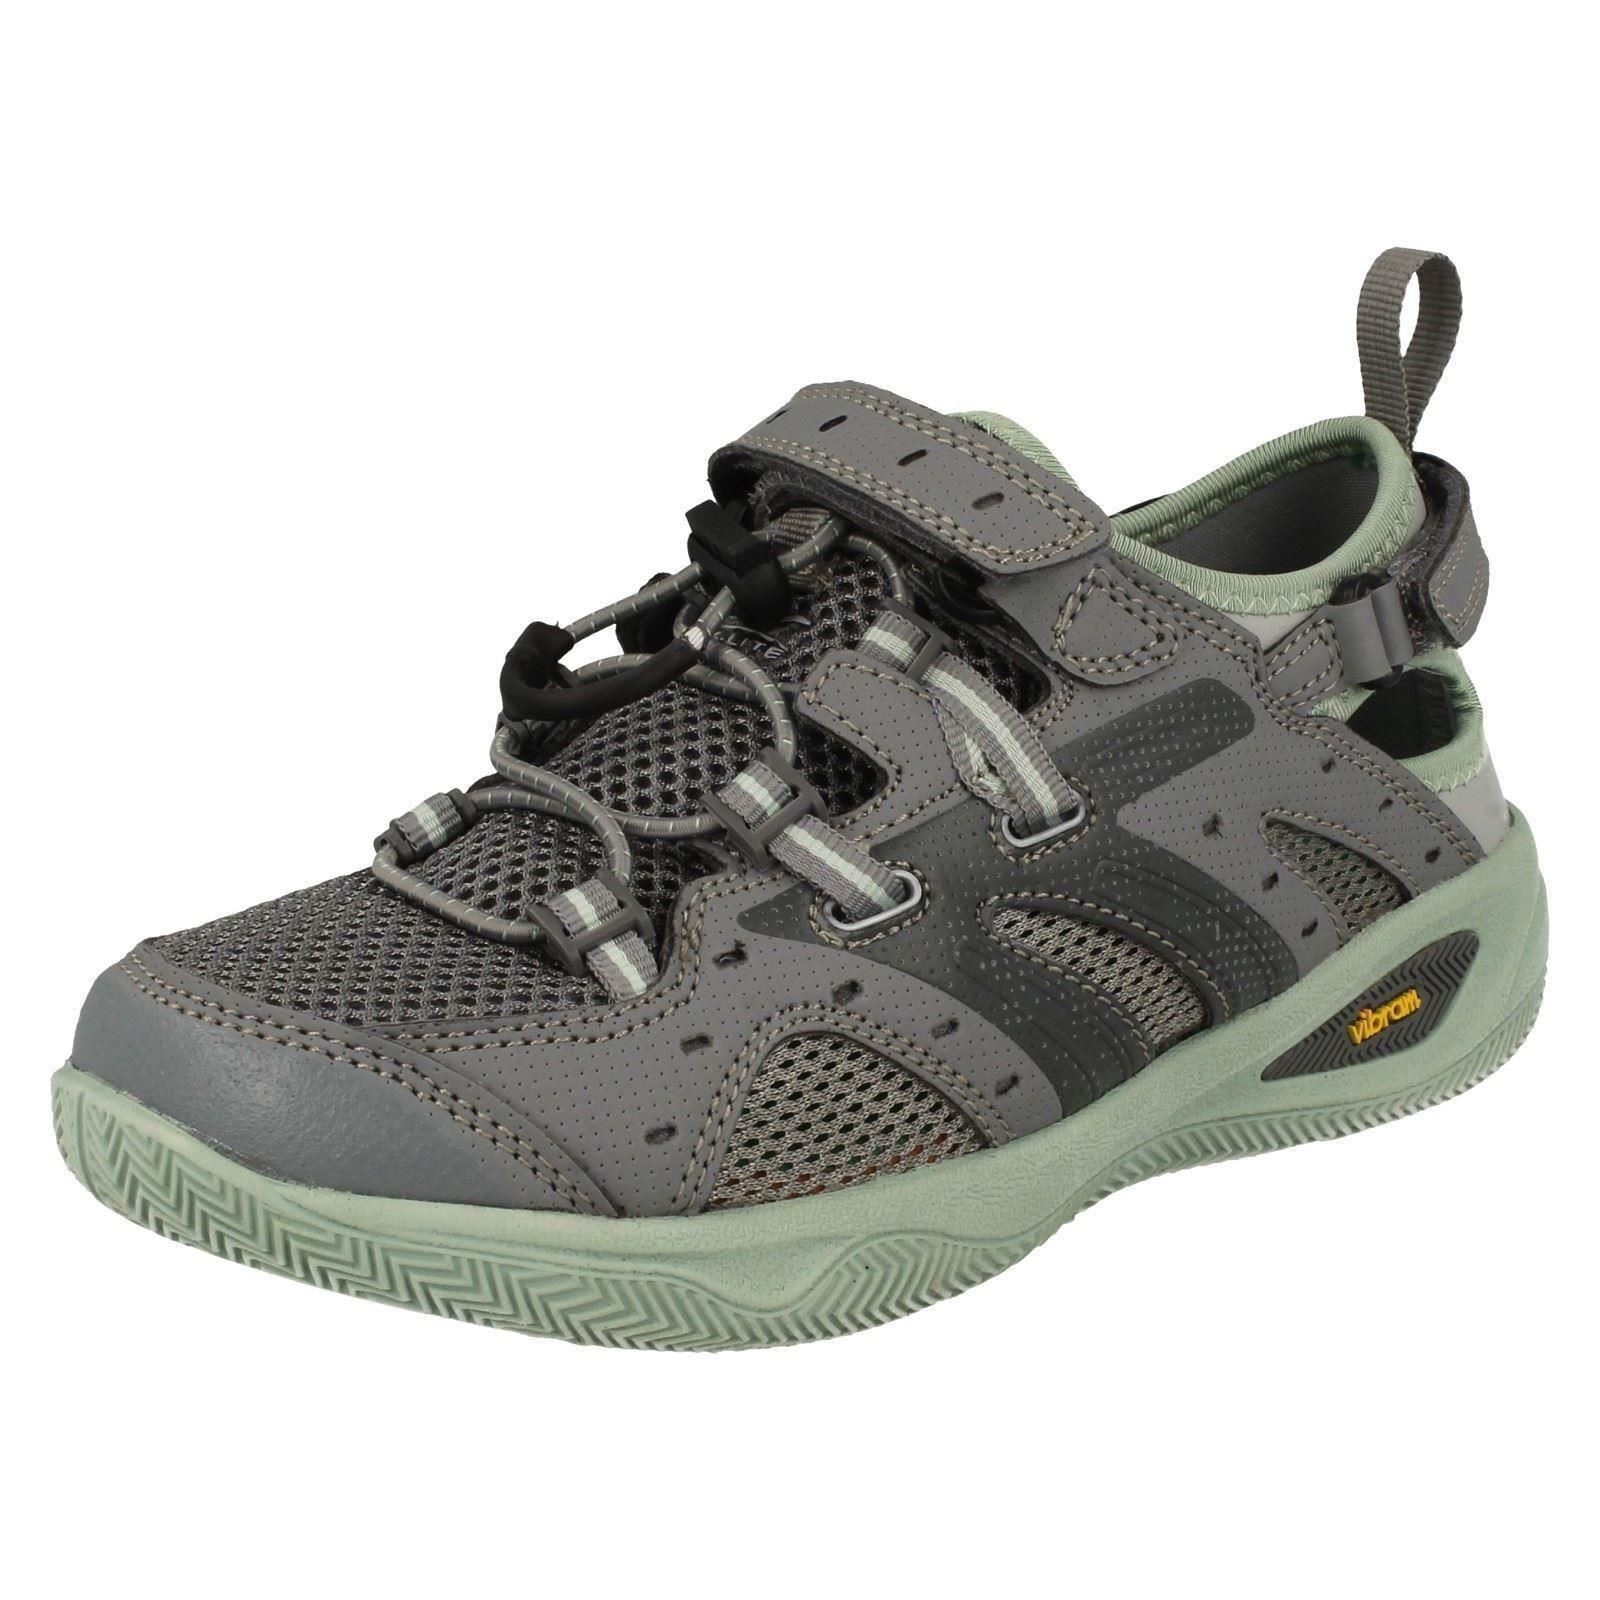 Ladies Cool Grey/Lichen Hi-Tec Summer Light Weight 1 Trainers V-Lite Rio Play 1 Weight 47381e